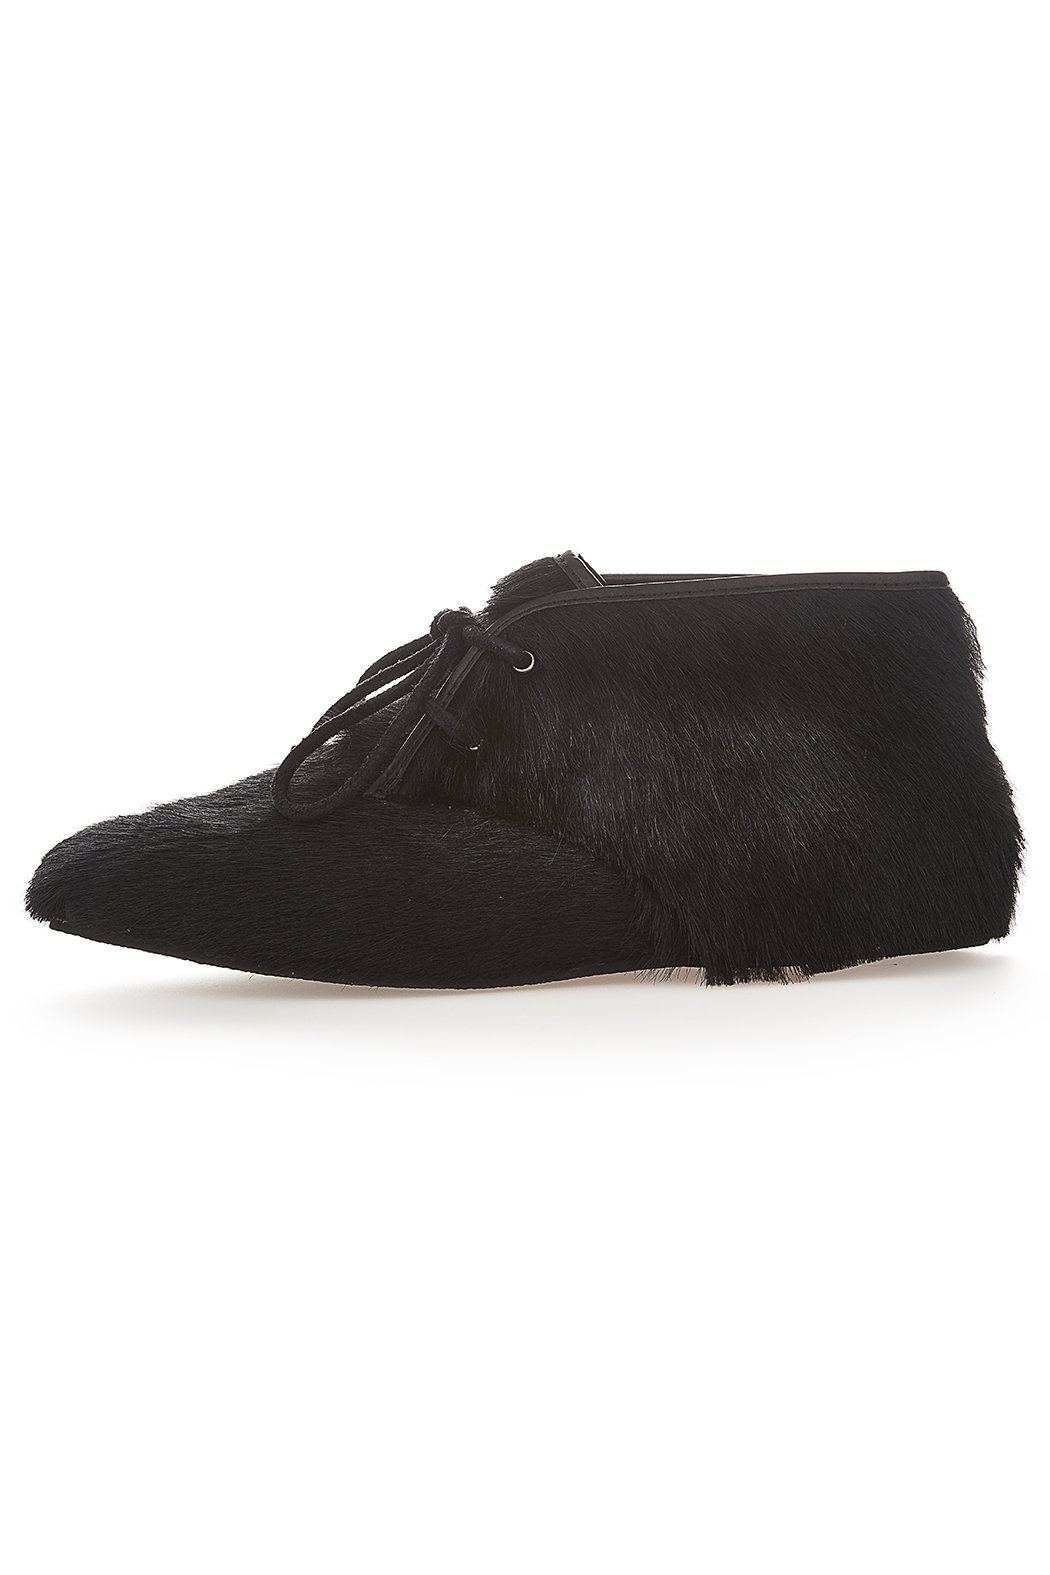 Anna Sui x Frye Tegan Chukka - Front Cropped Image